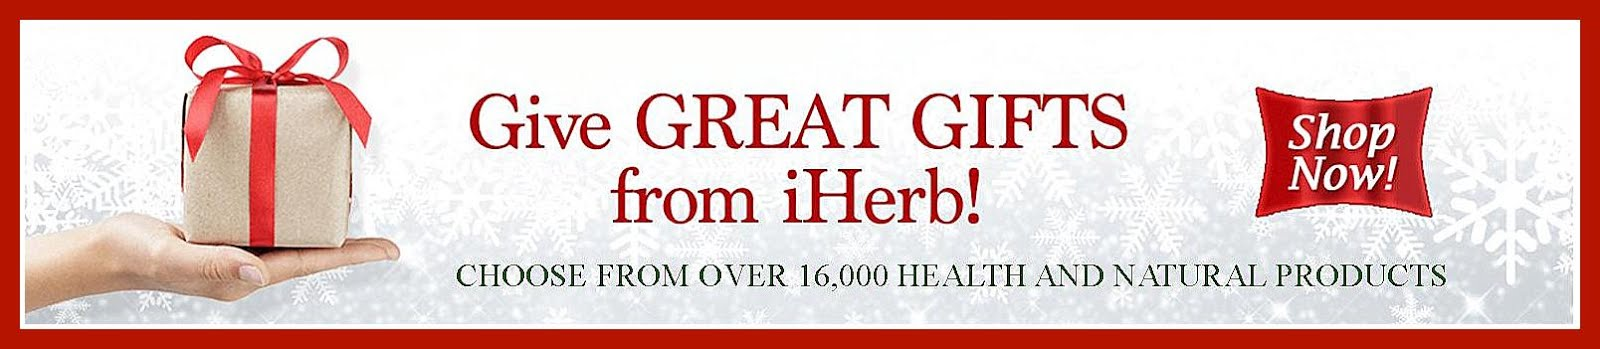 Shop at Iherb - Free Shopping over $20 Purchase